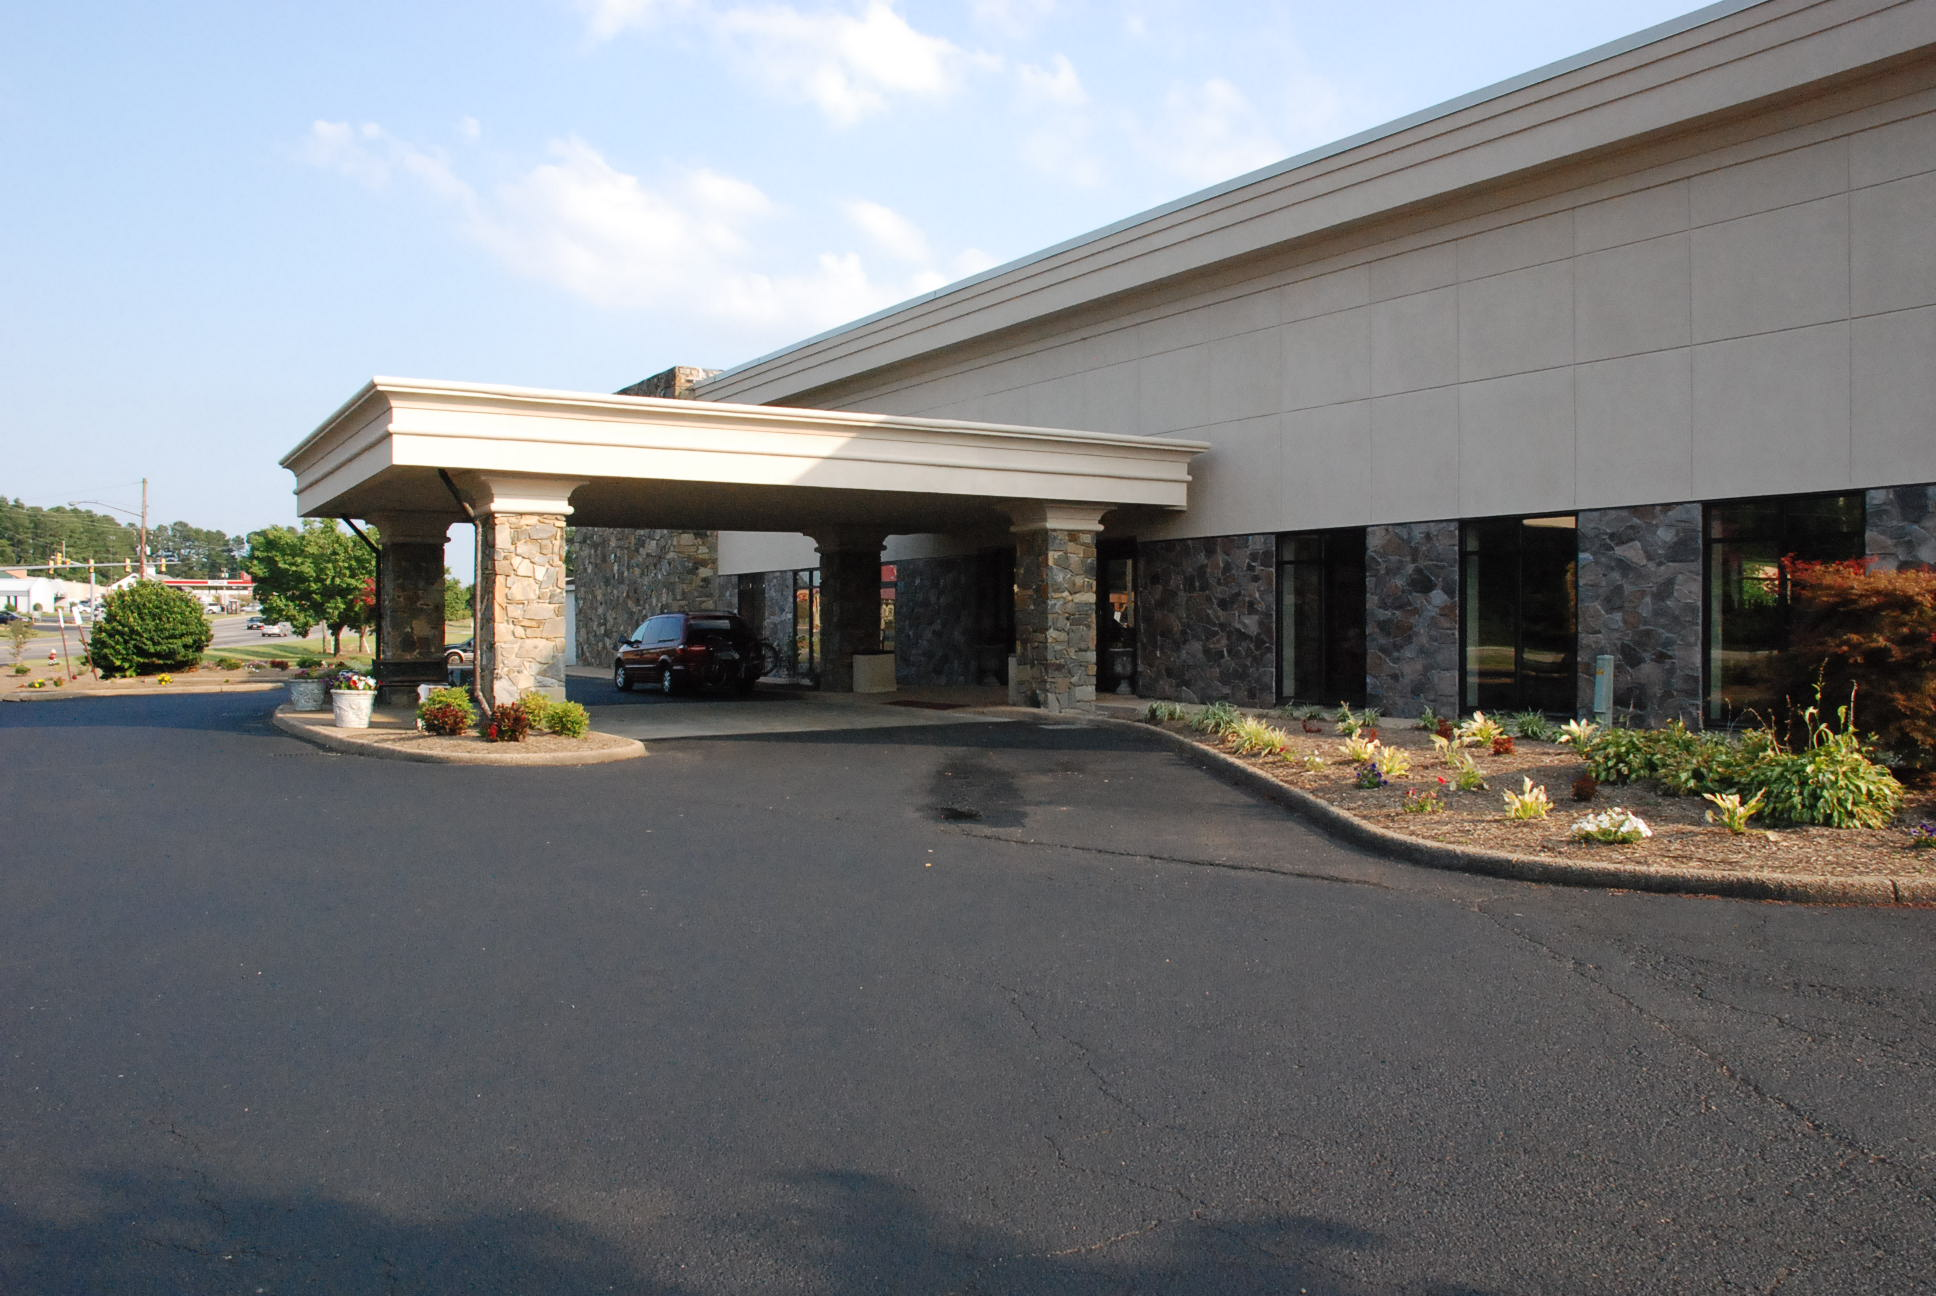 Commercial Real Estate Auction Hotel And Conference Center At 500 Merrimac Trail Williamsburg